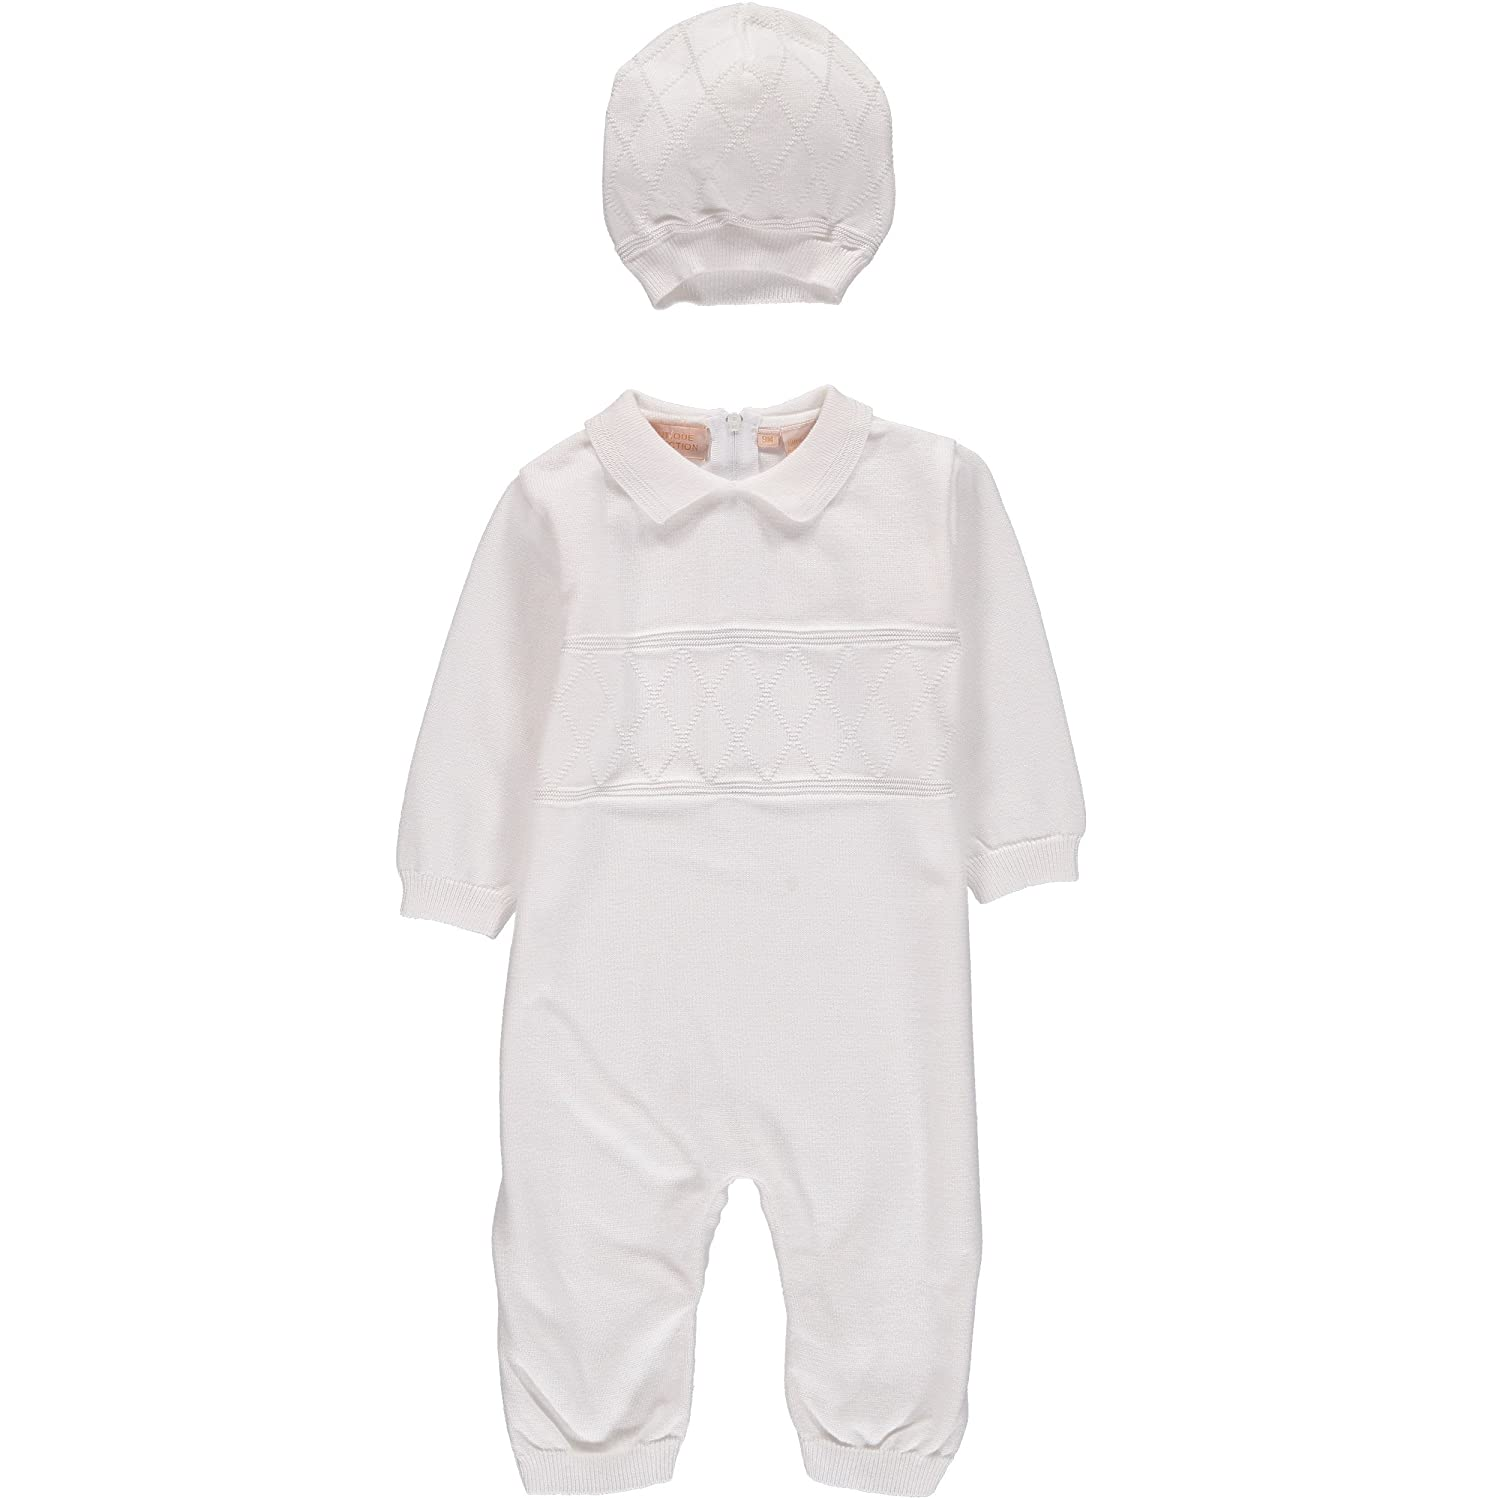 673d73119 Amazon.com: Baby Boys' Christening Coverall with Diamond Stitching -  Includes Hat: Clothing